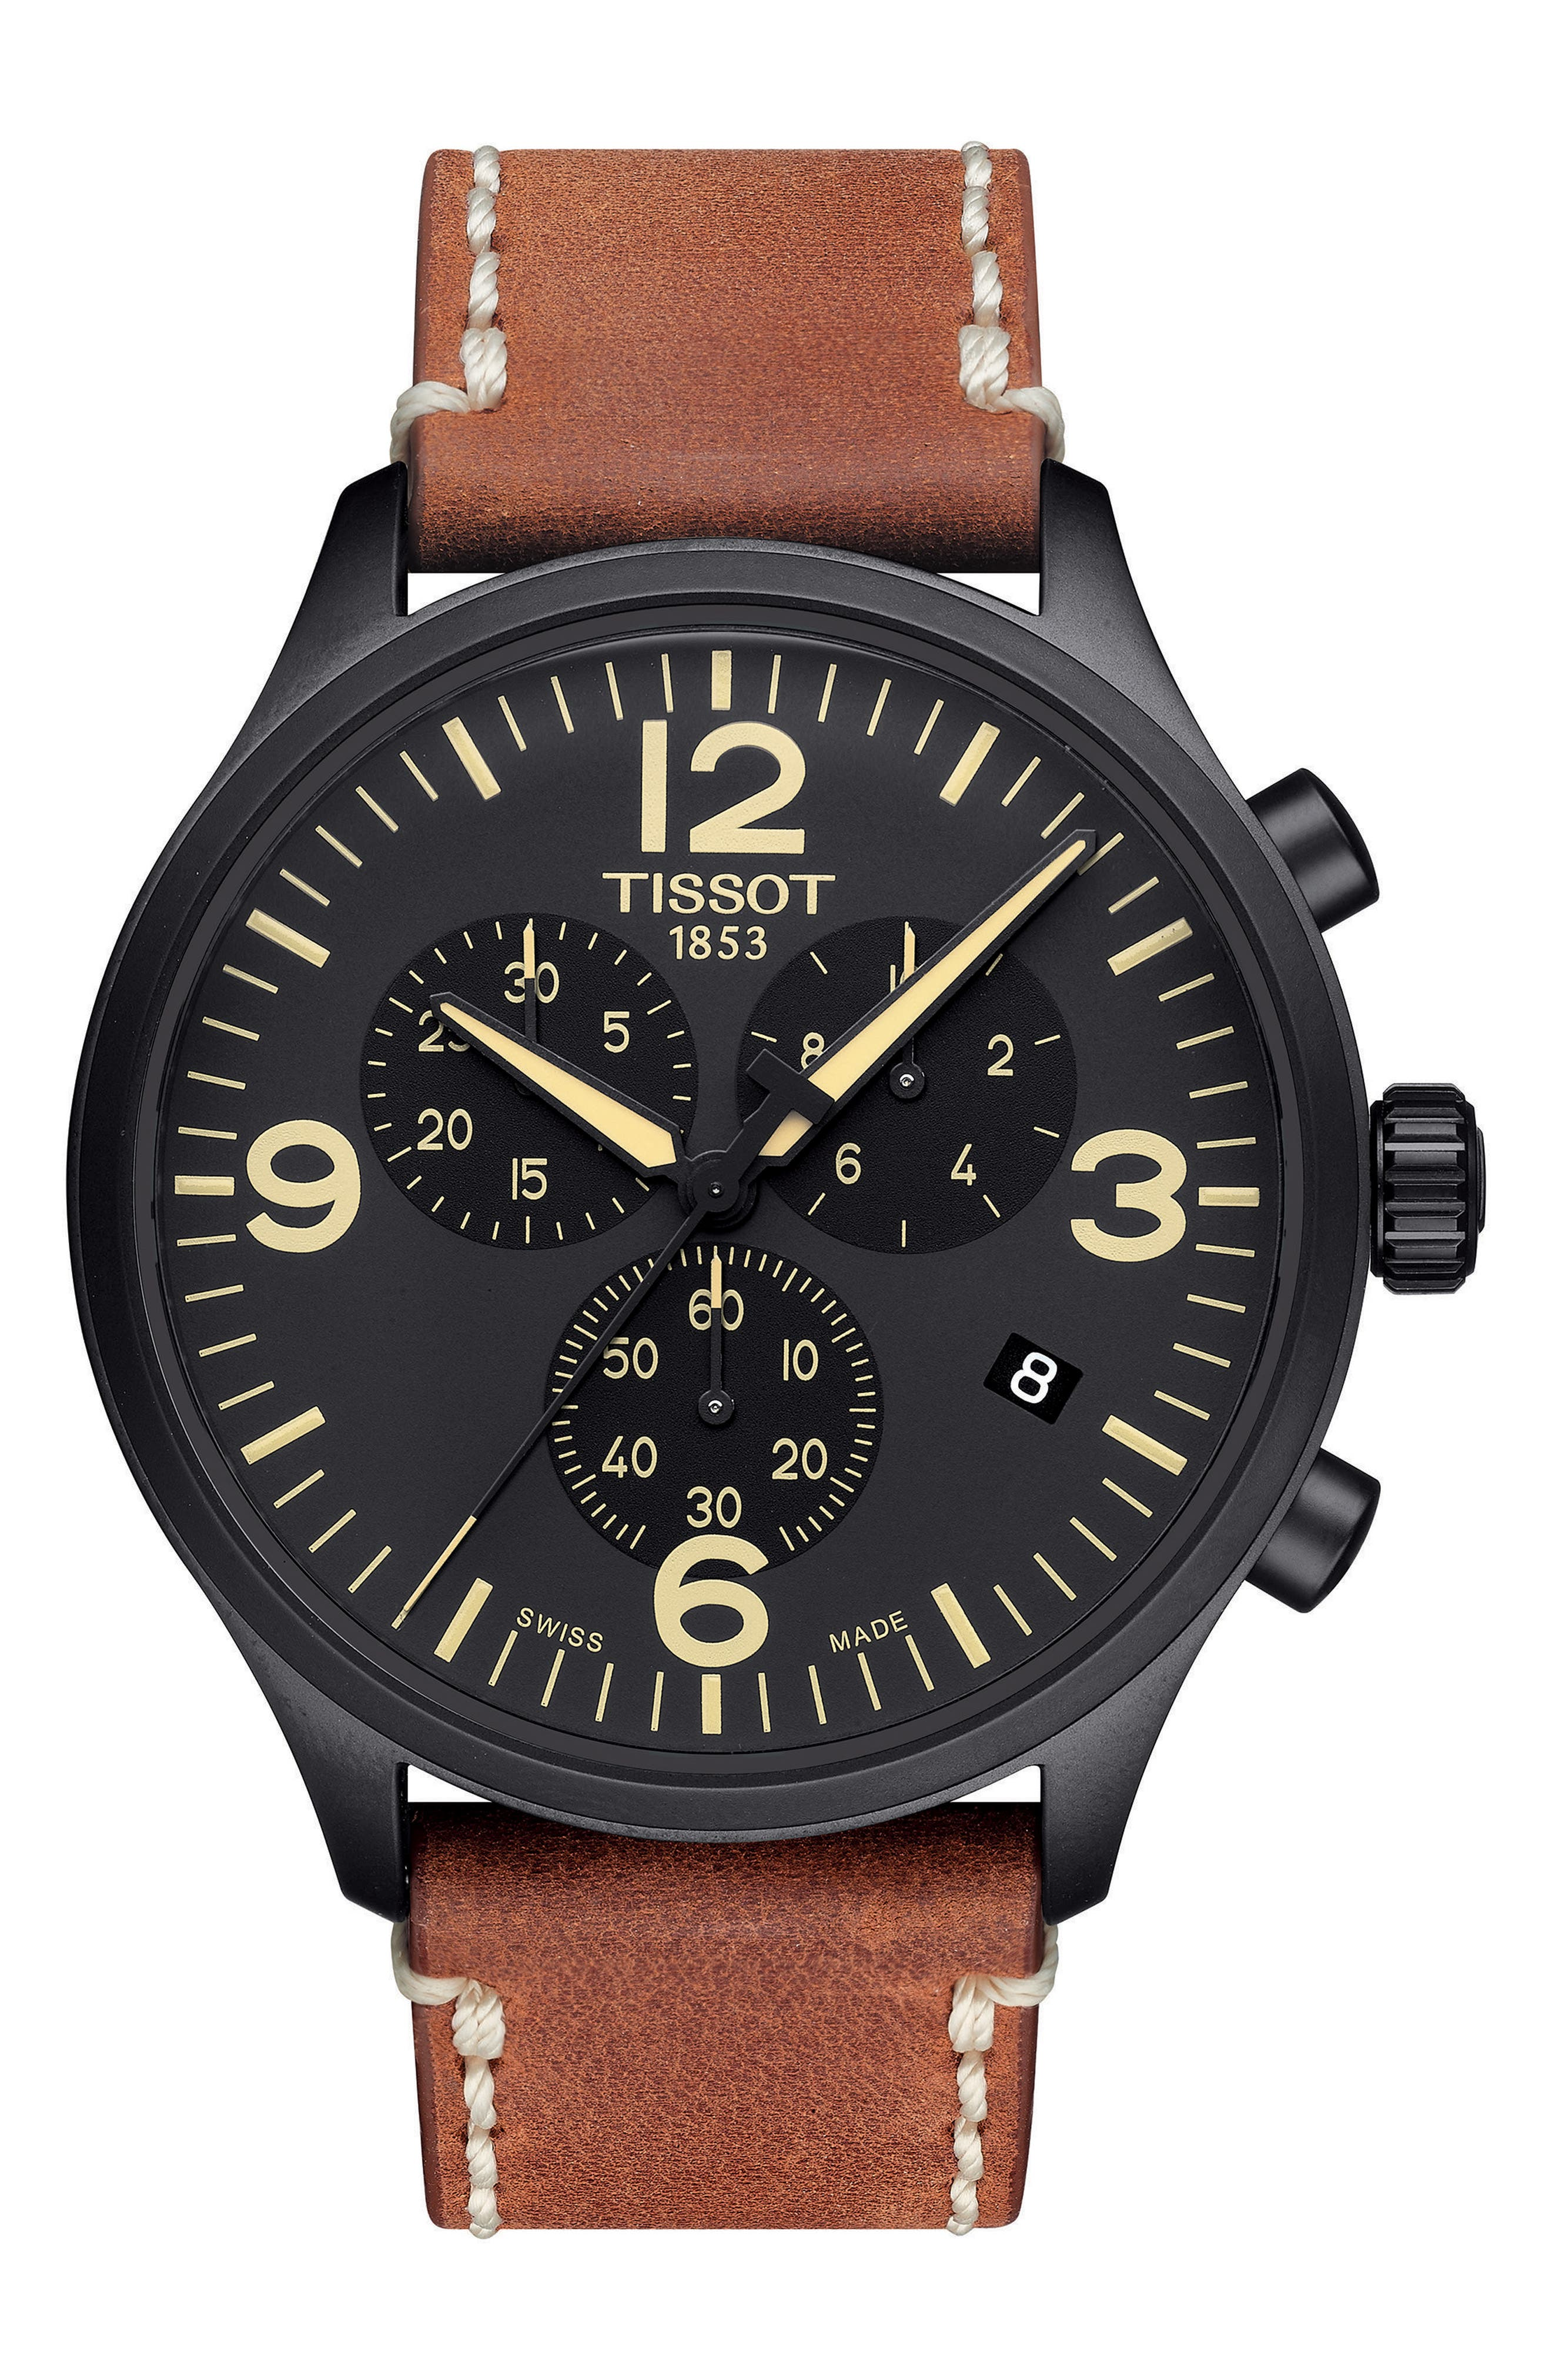 Main Image - Tissot Chrono XL Leather Strap Chronograph Watch, 45mm